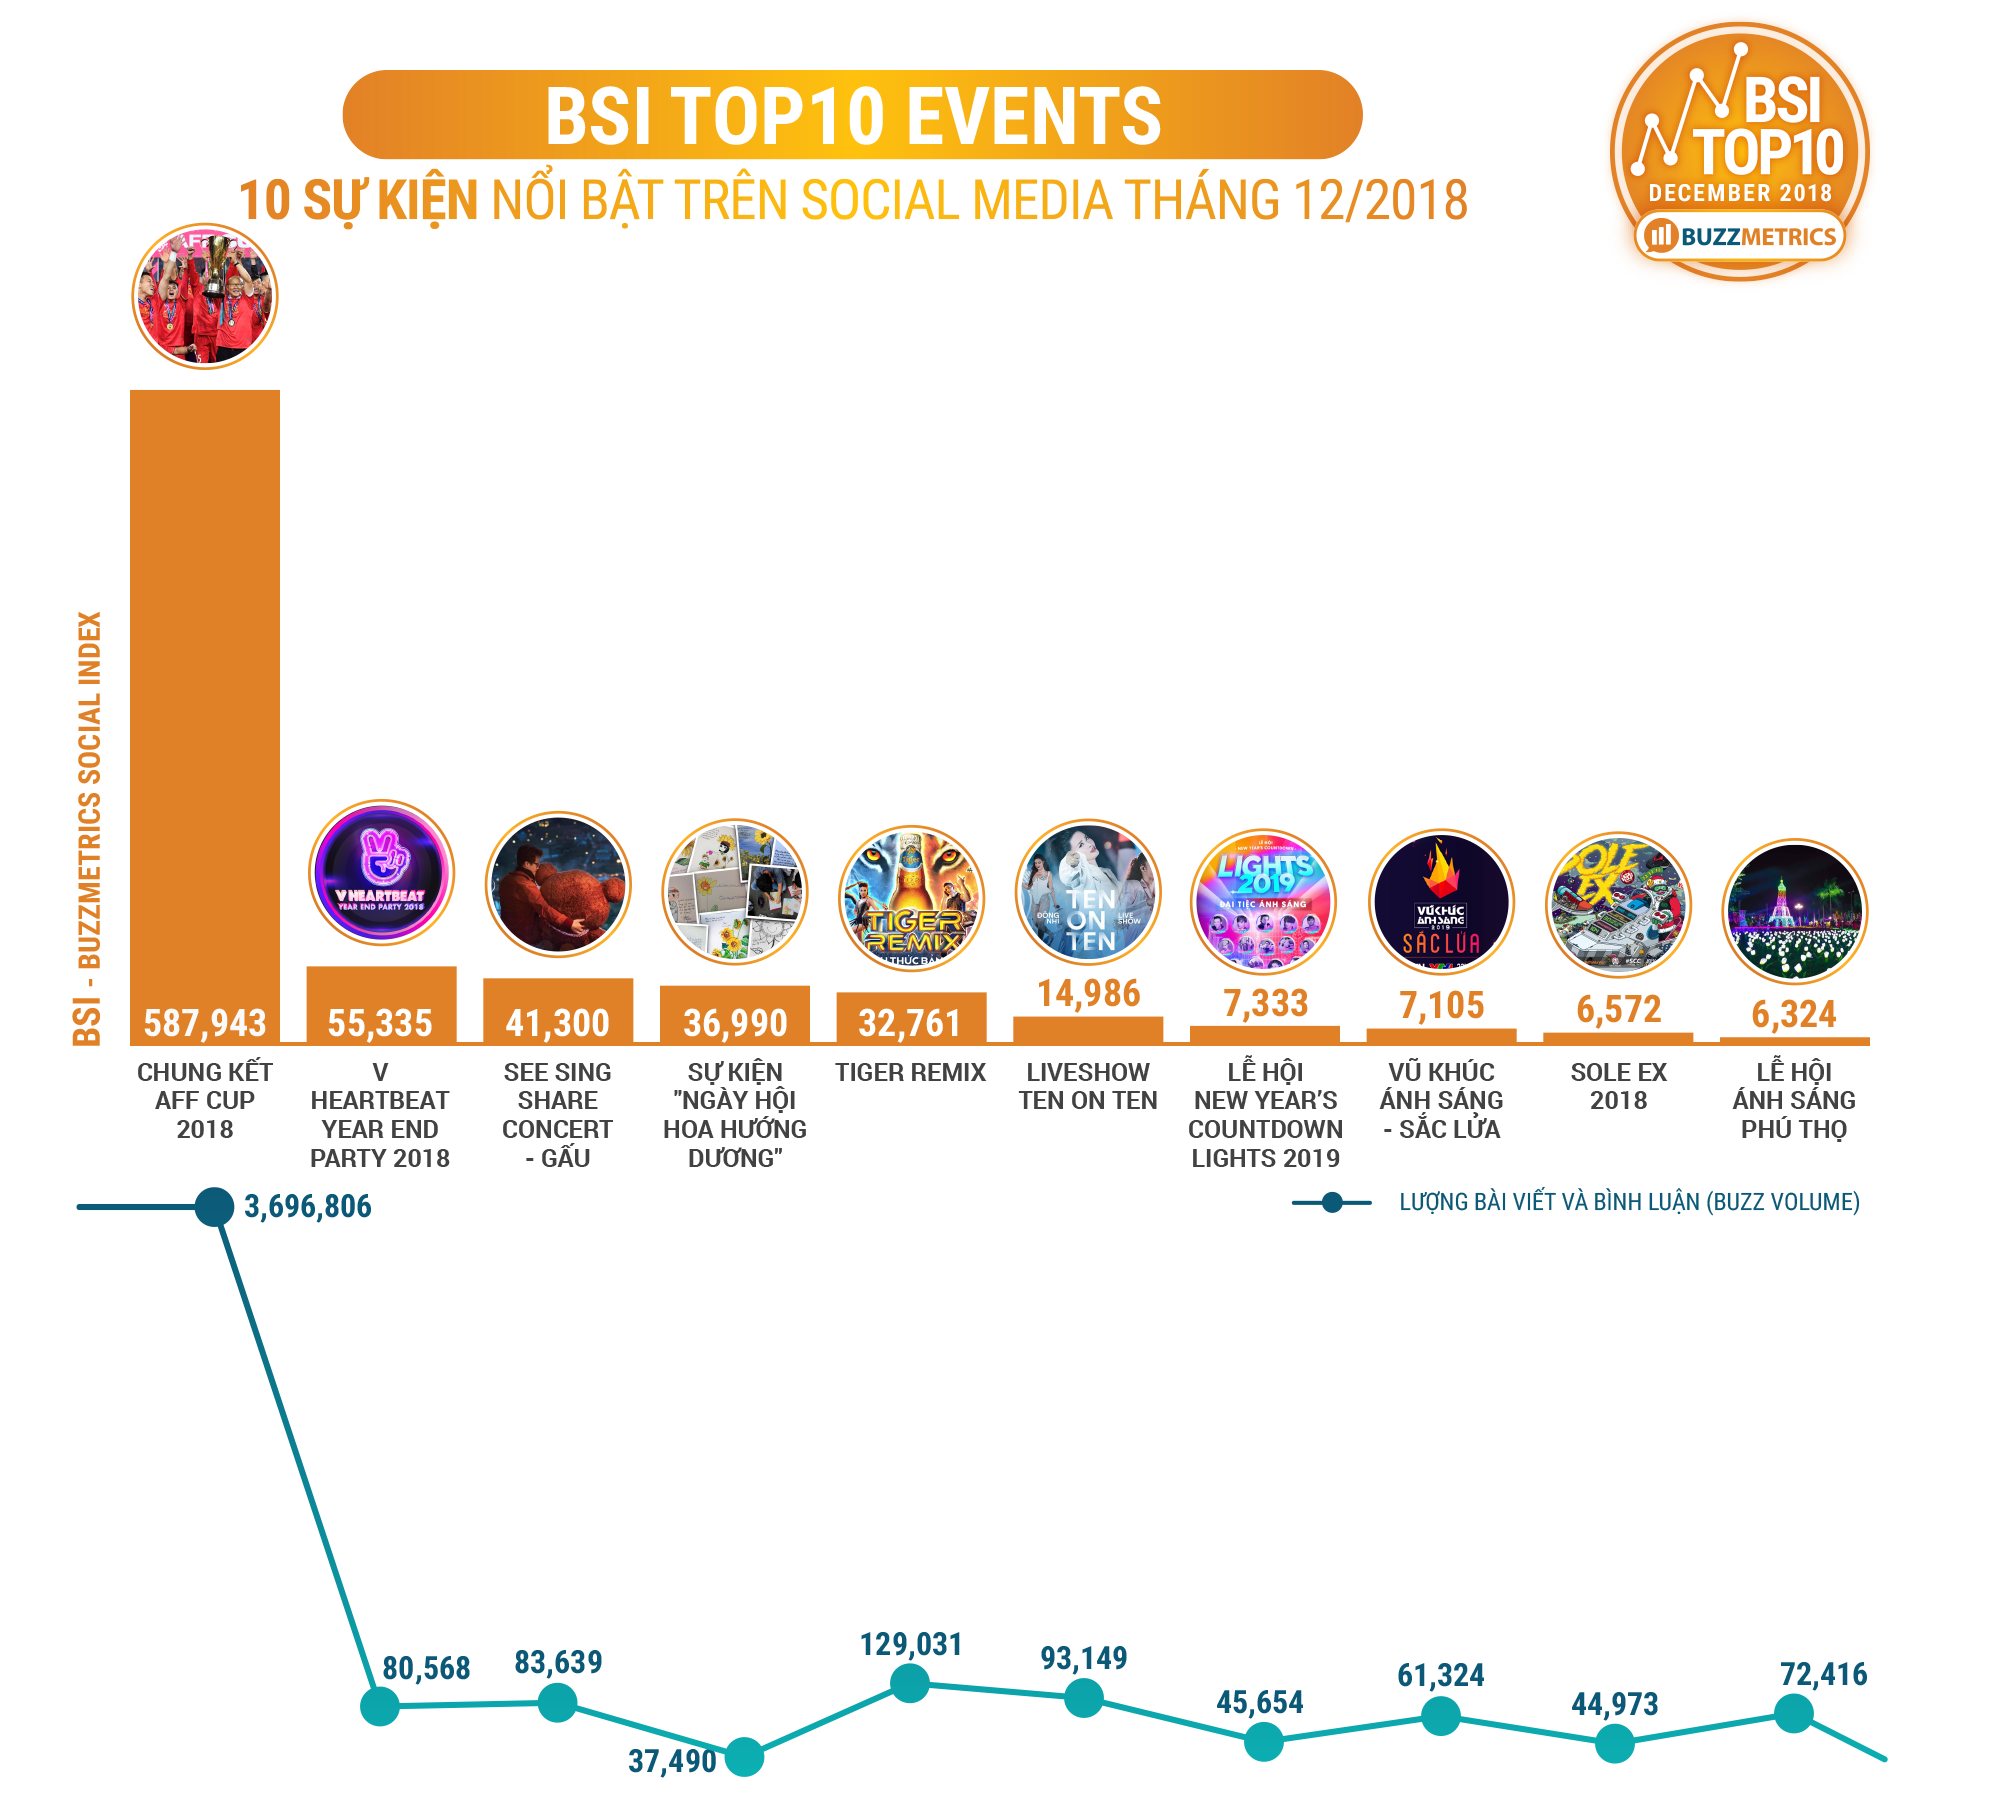 BSI Top10 Events 12/2018